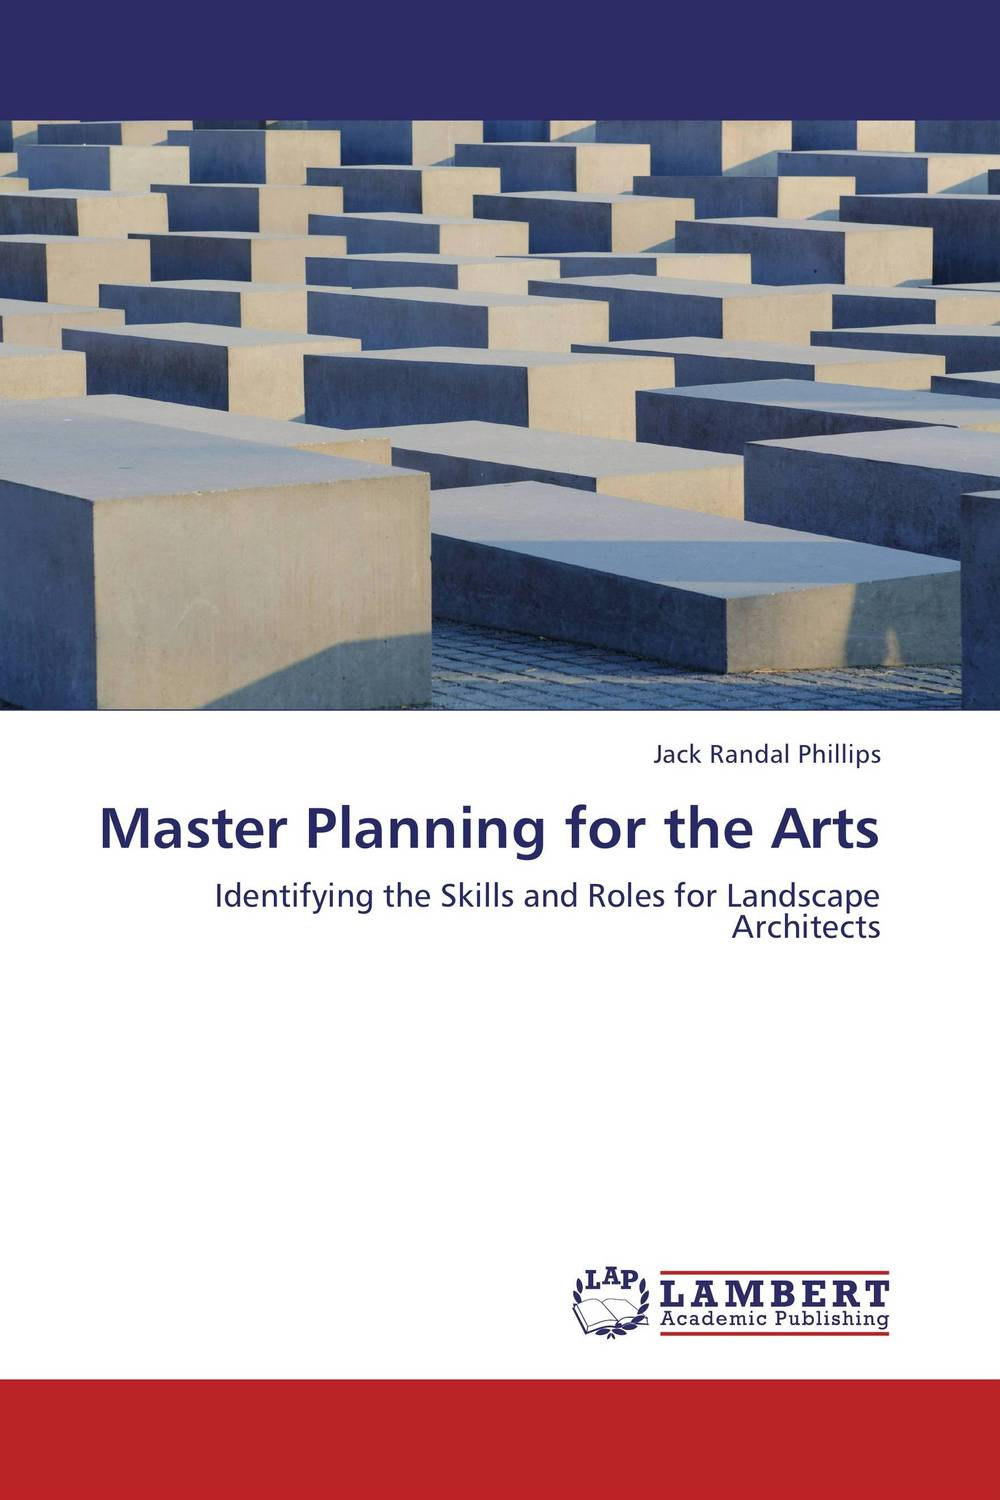 Master Planning for the Arts keith billings master planning for architecture